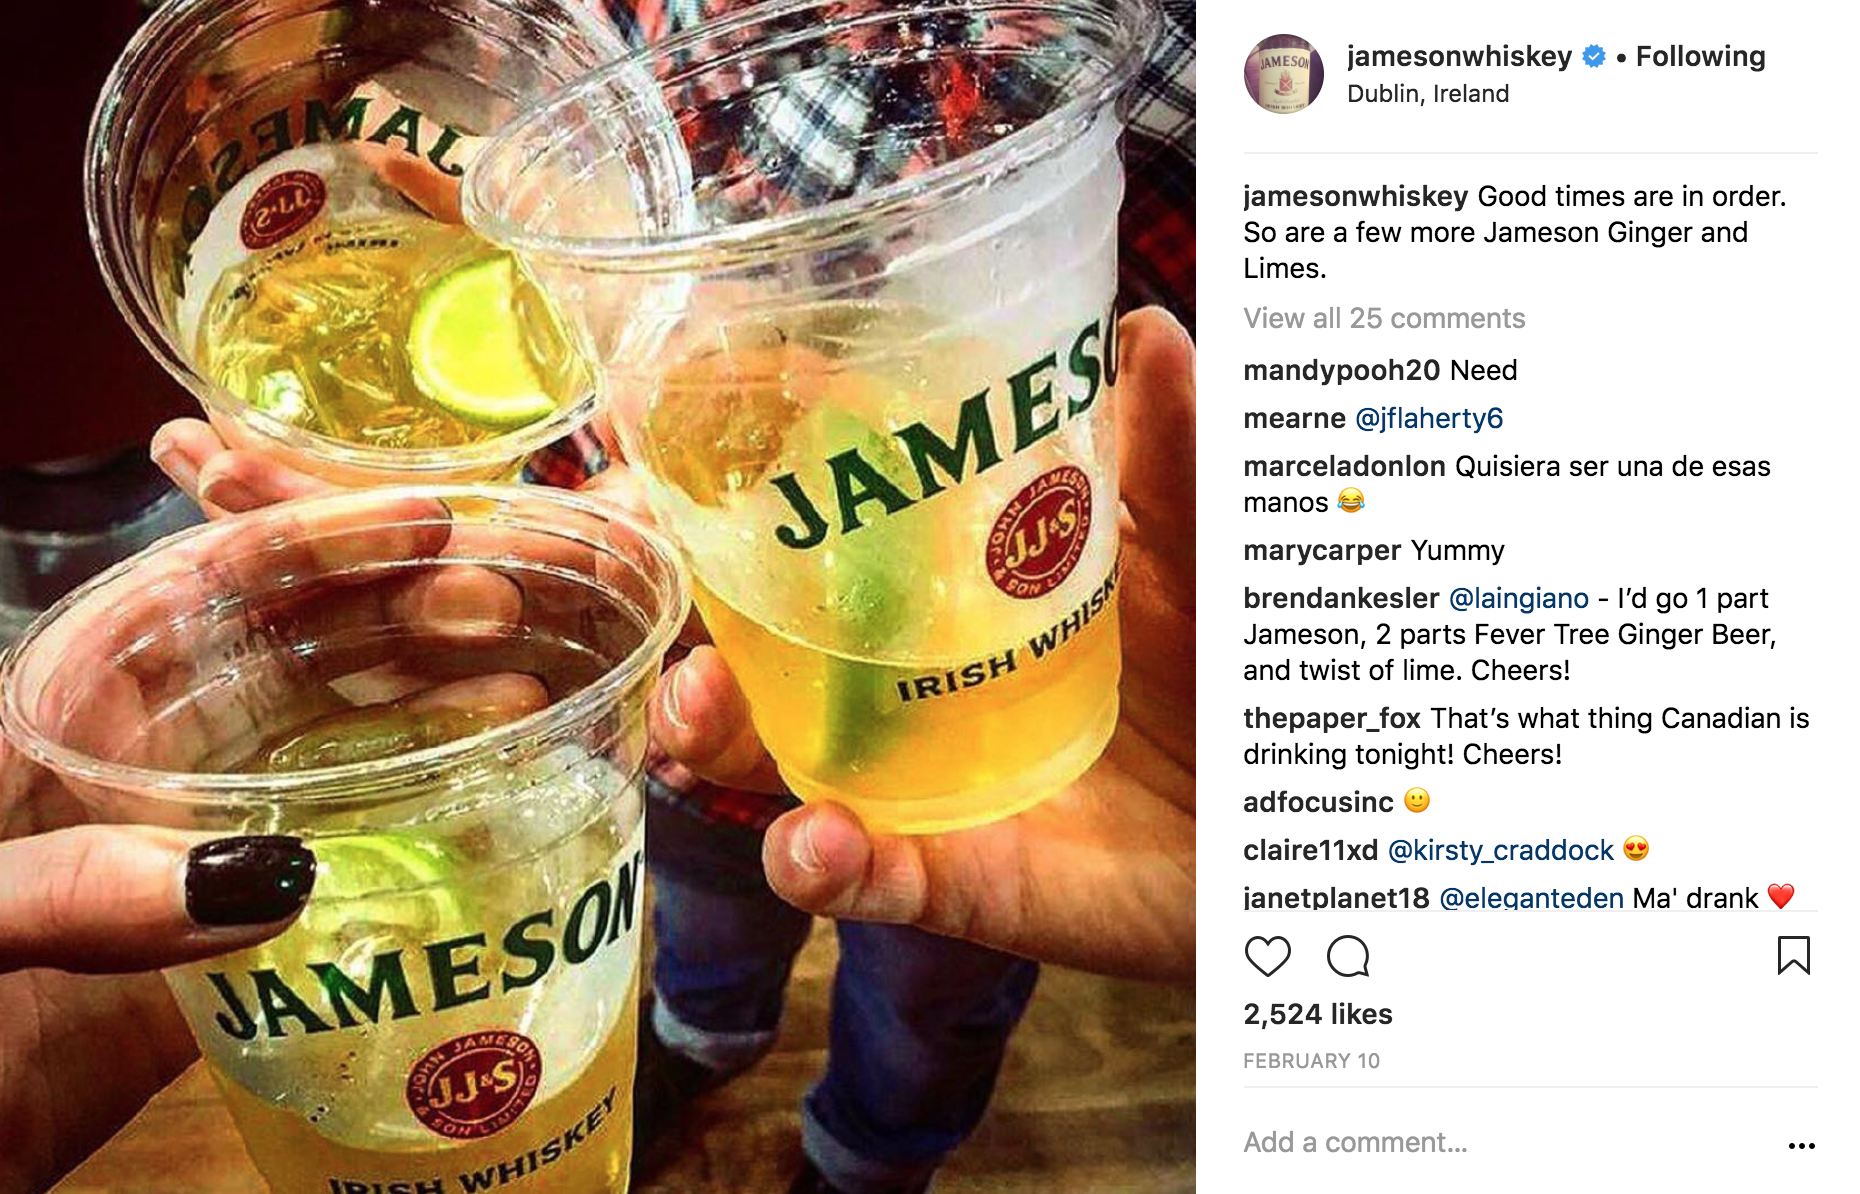 Good times are in order. So are a few more Jameson Ginger and Limes.